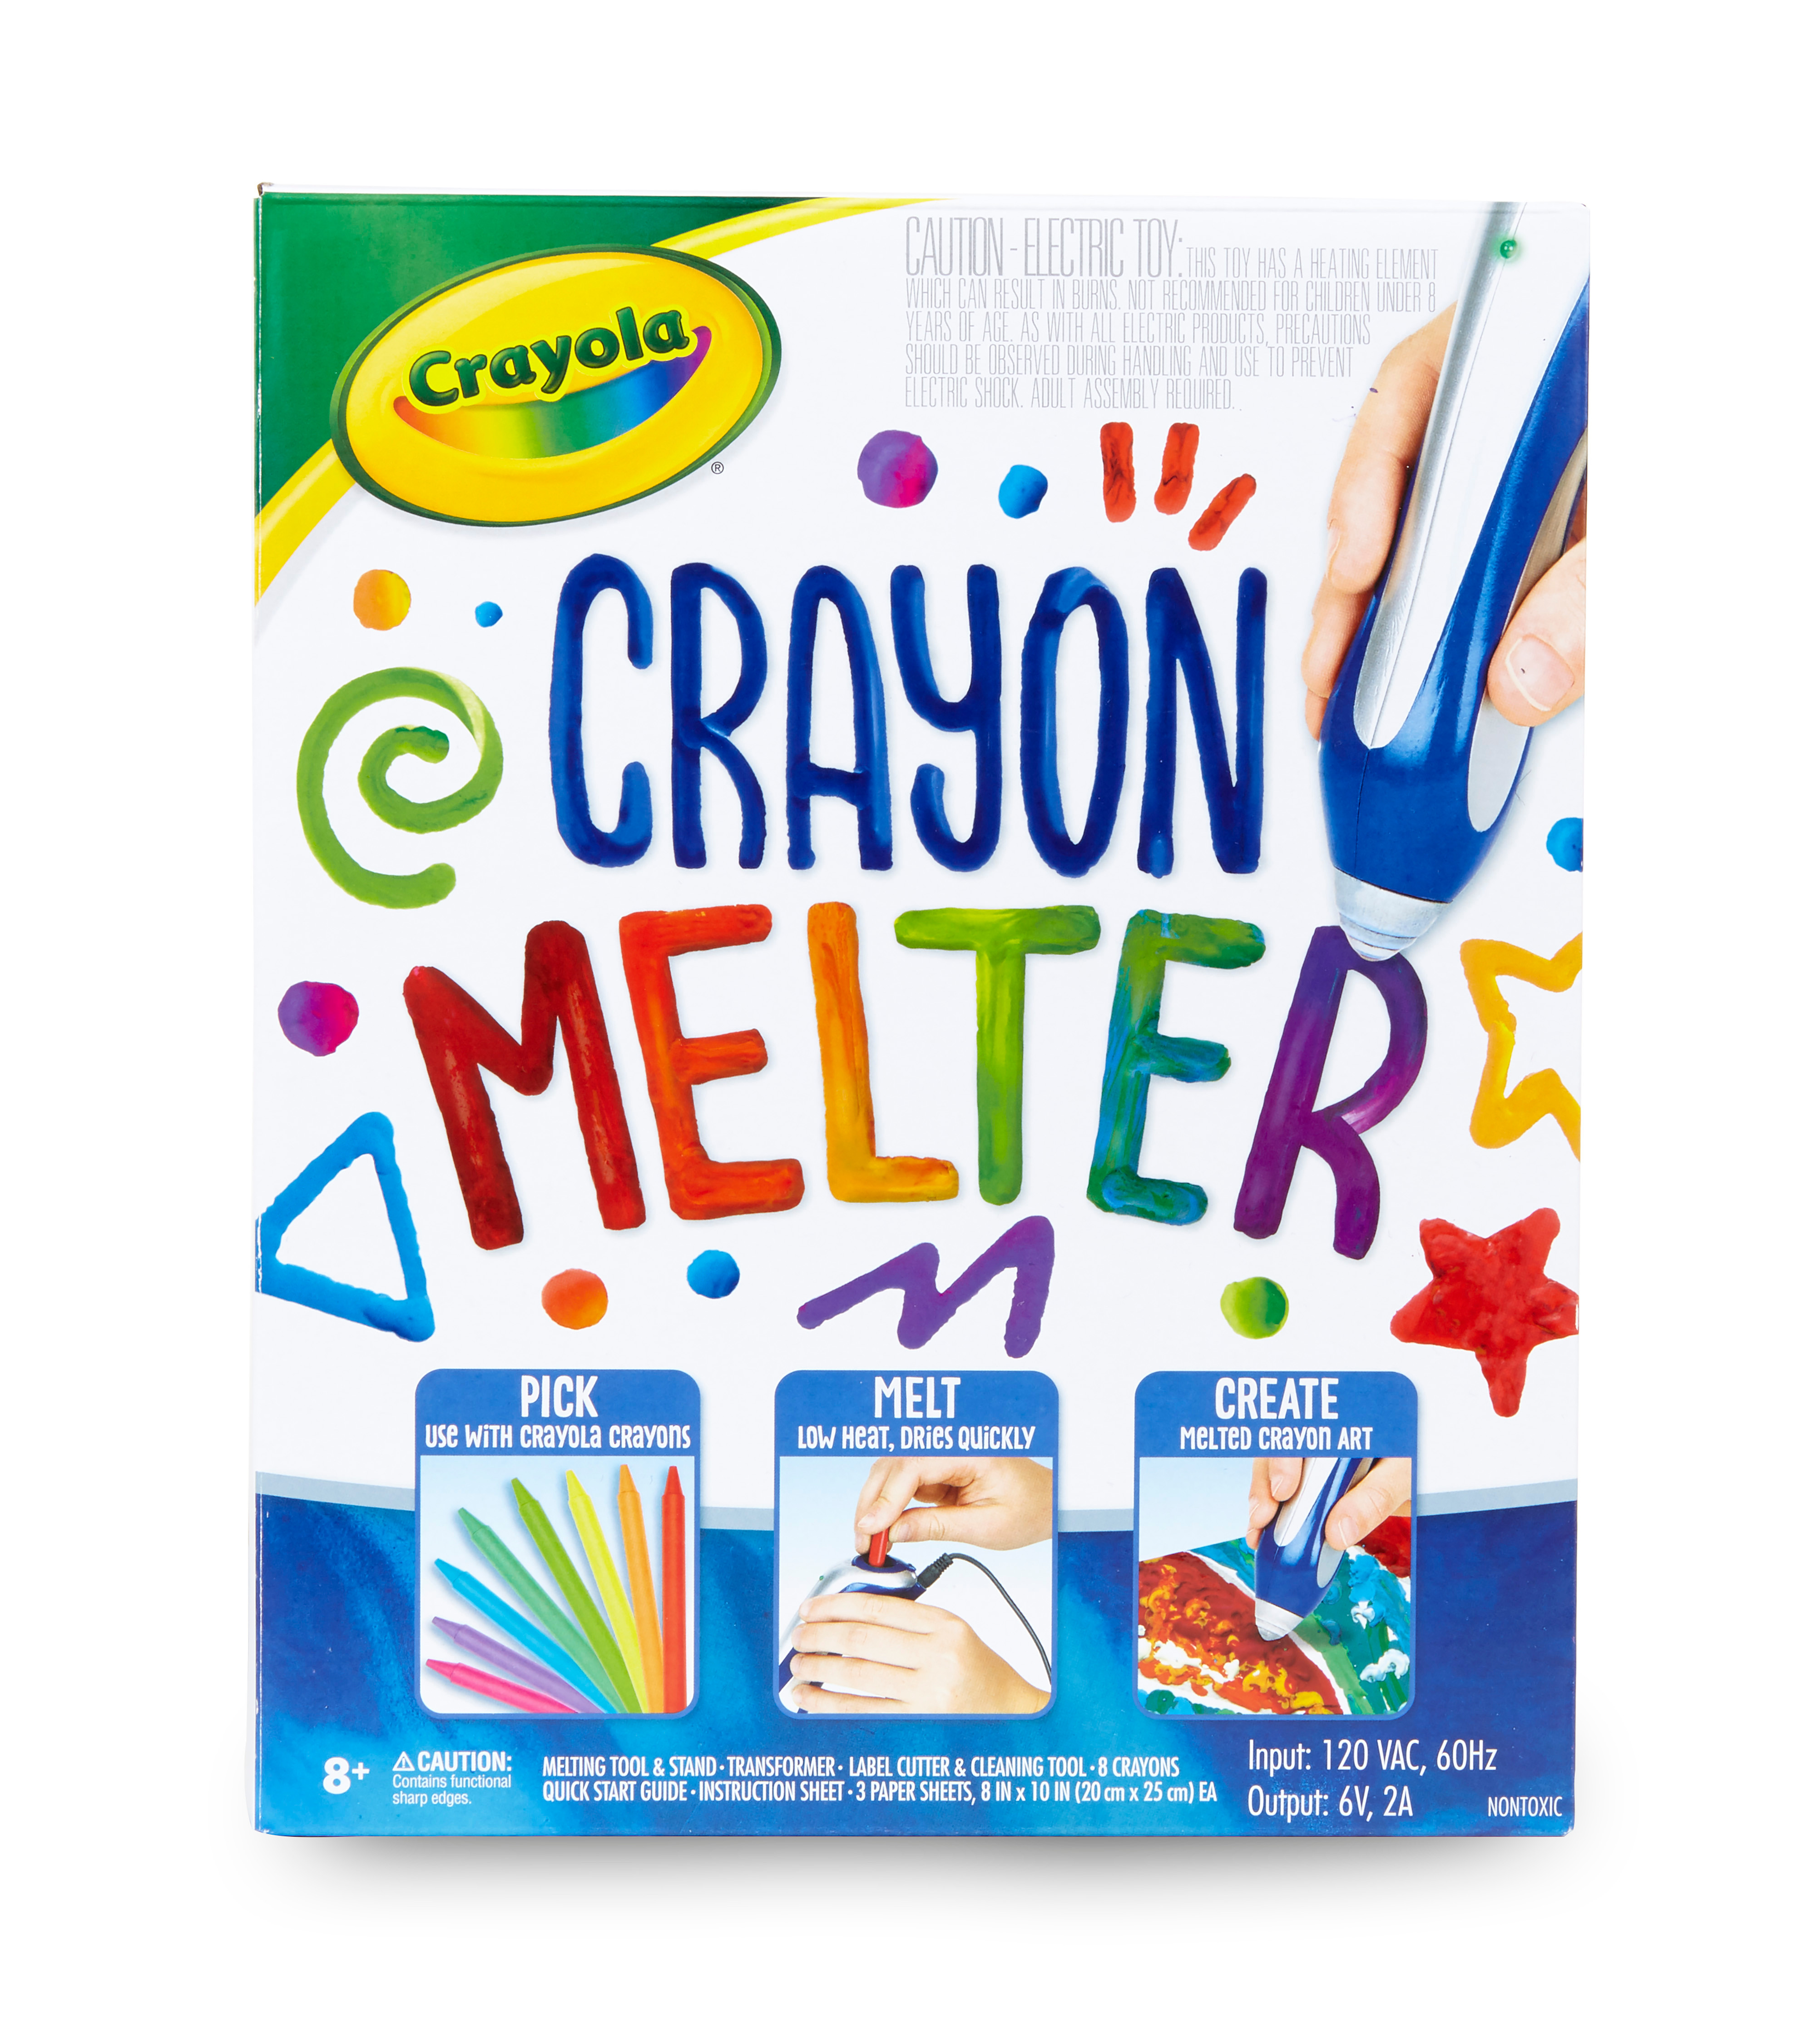 Crayola Crayon Melter Kit with Crayons, Gift for Kids, Child Ages 8-11